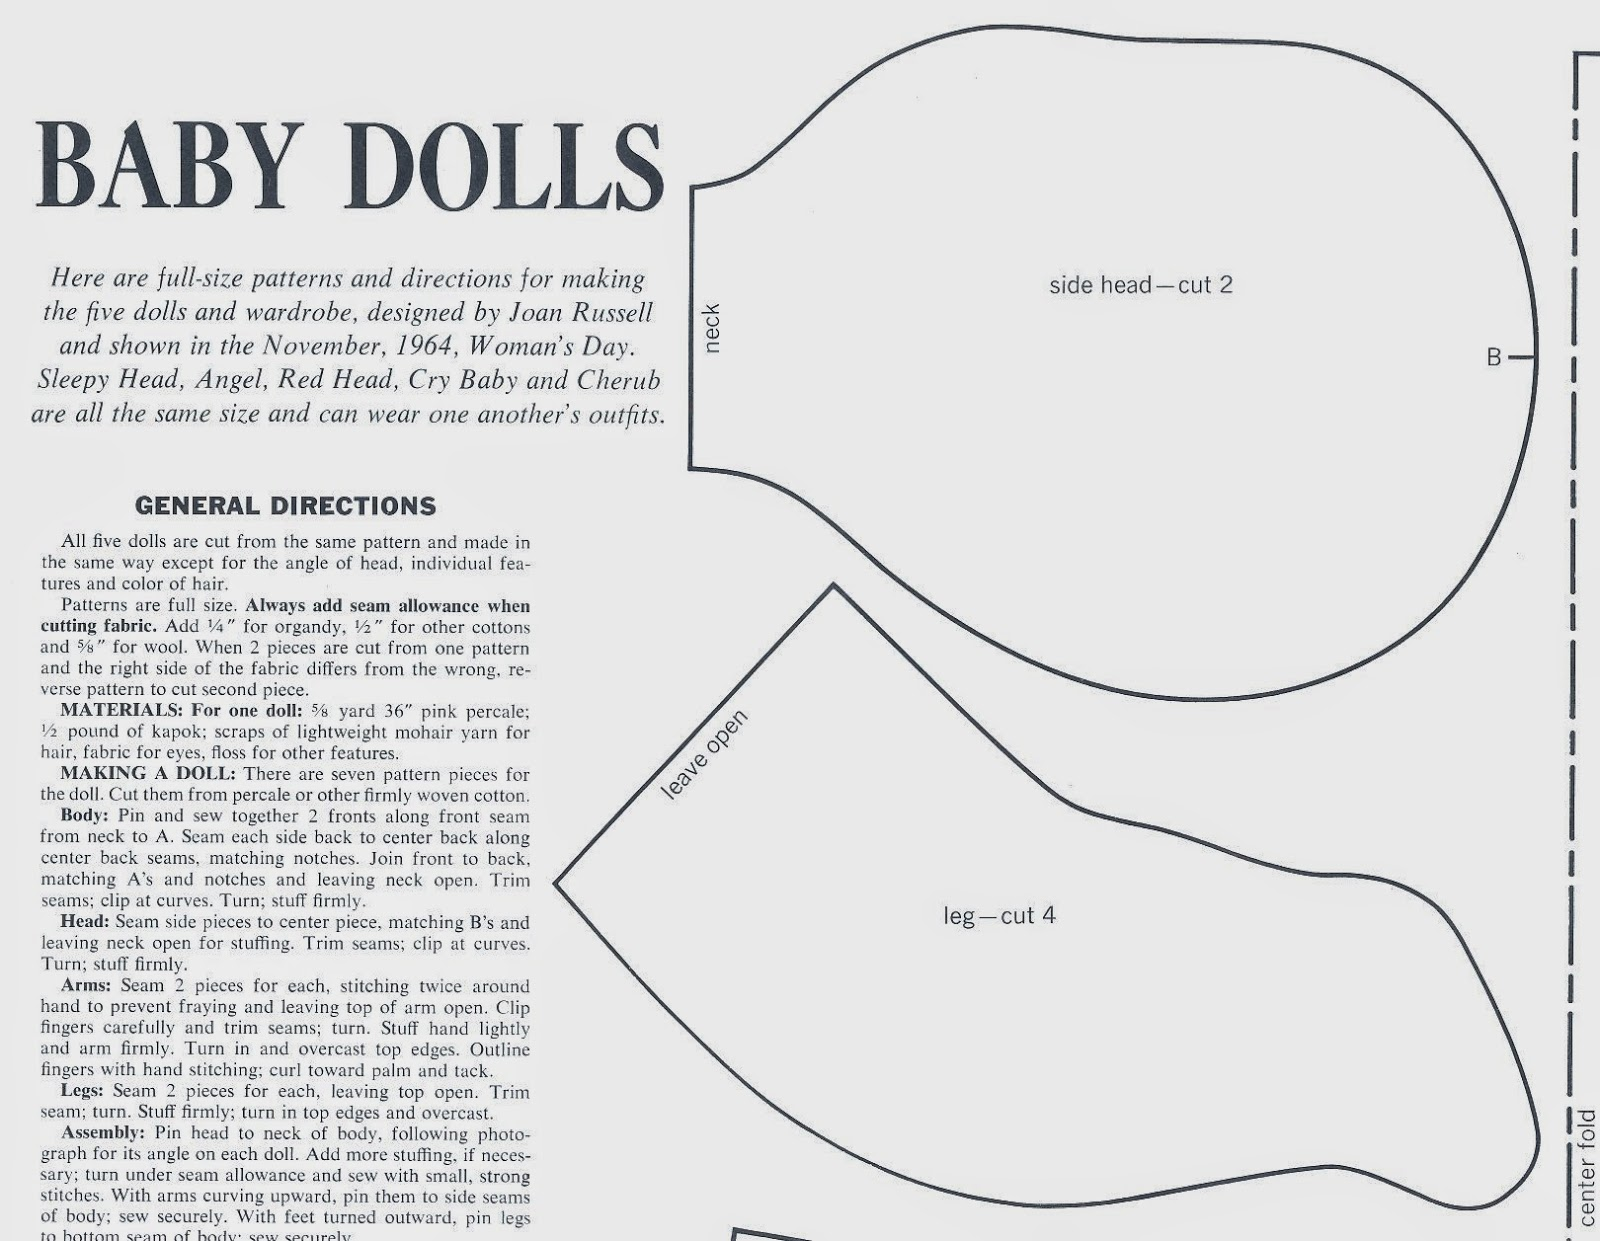 Vintage Cloth Doll Patterns: Baby Dolls by Joan Russell